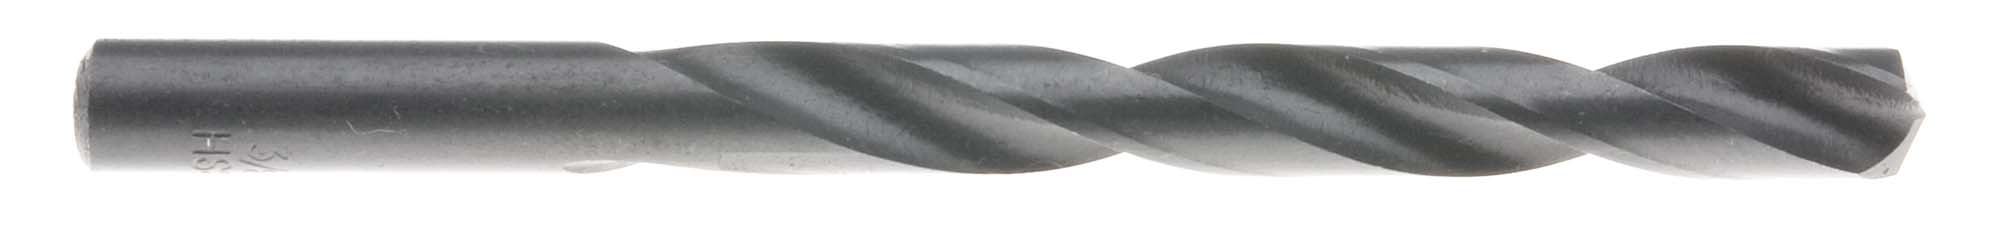 "#29 (.1360"") Heavy Duty Split Point Jobber Drill Bit, High Speed Steel"